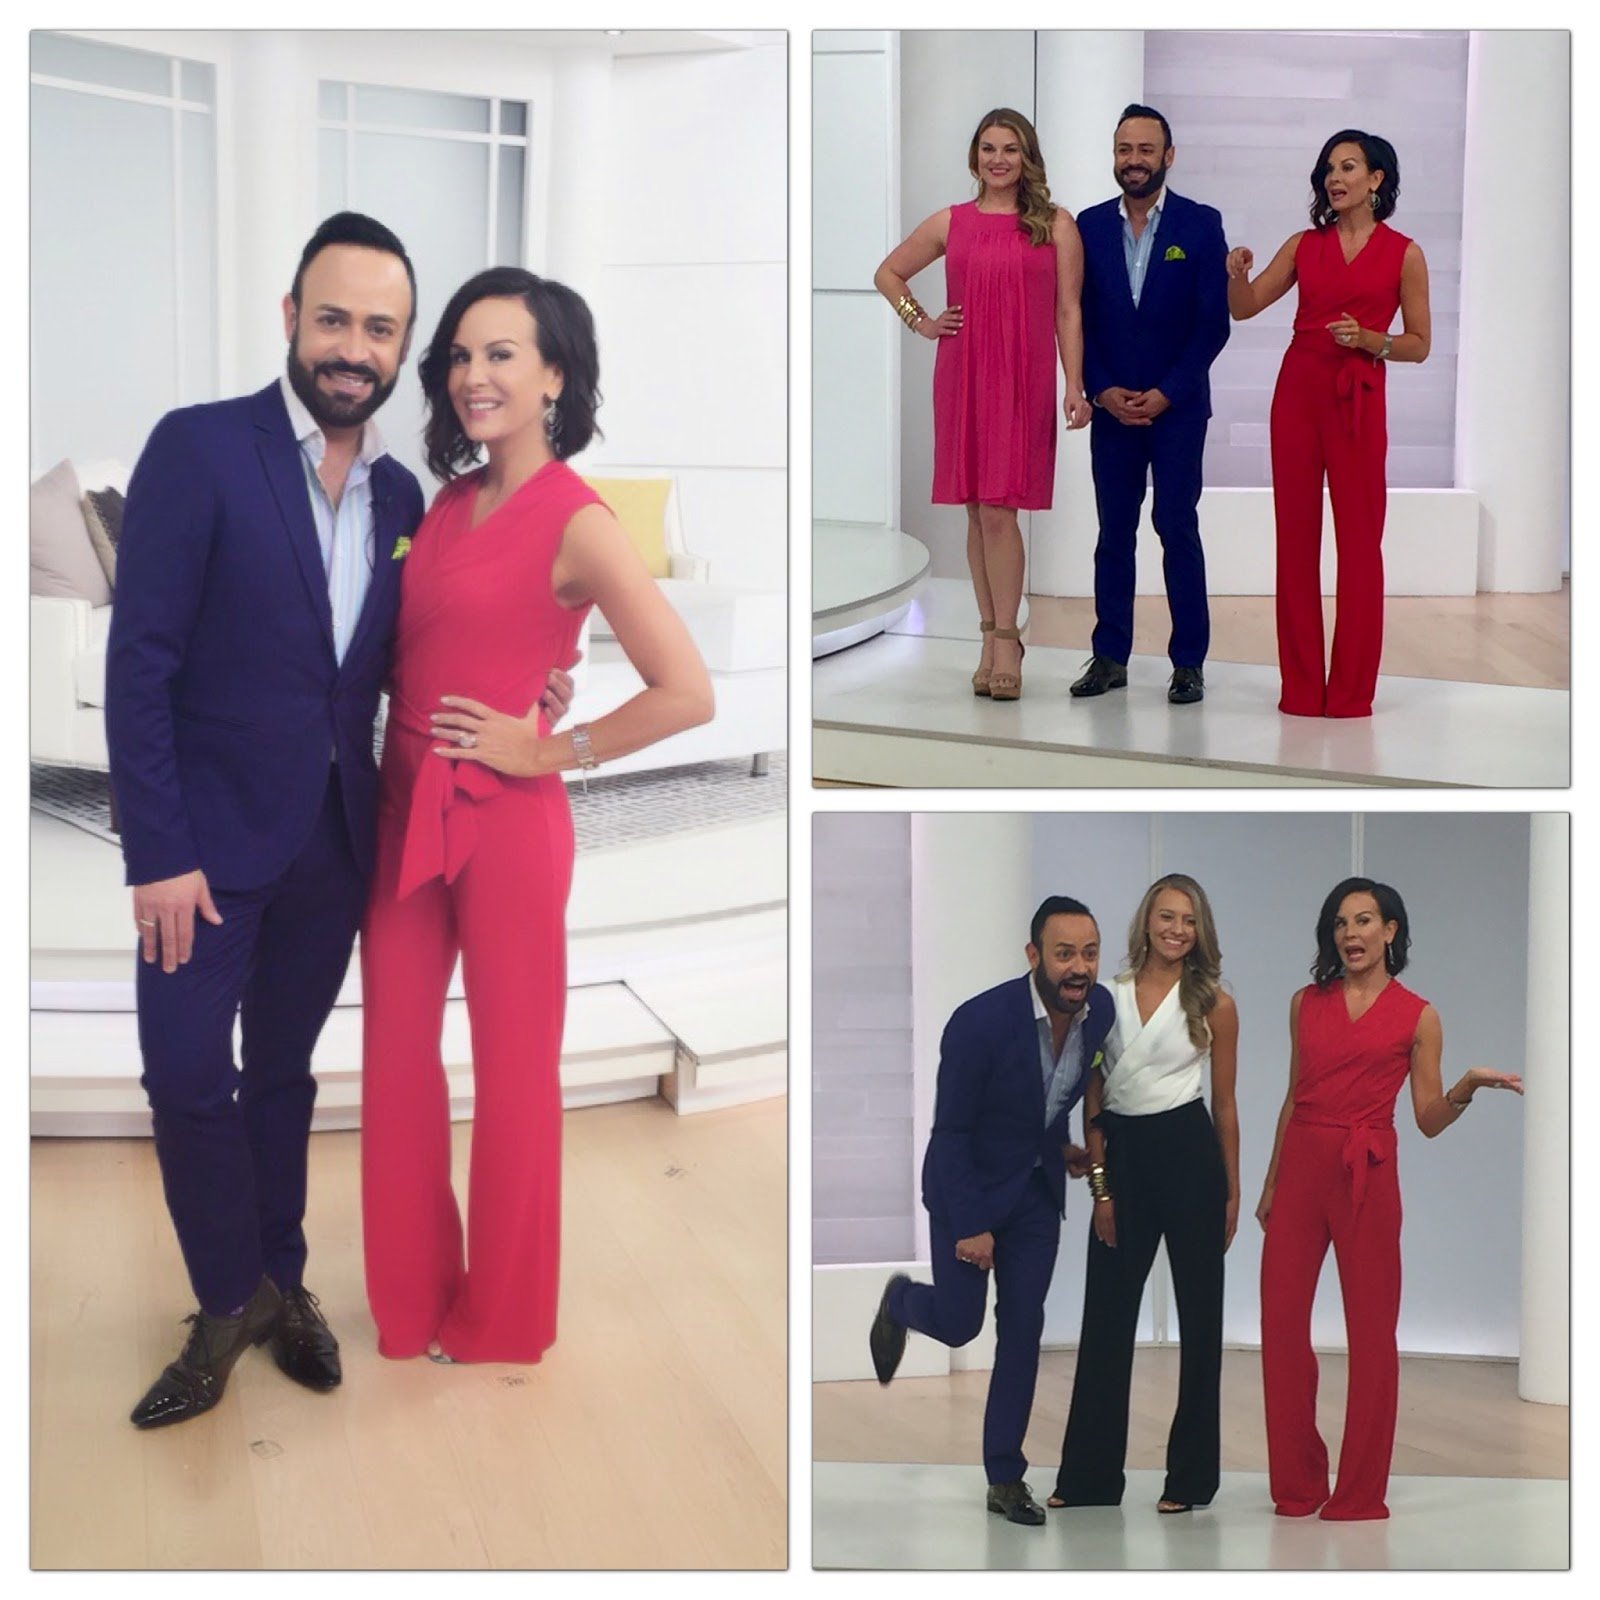 Evine Live Shopping Network - April show presentation on evine live